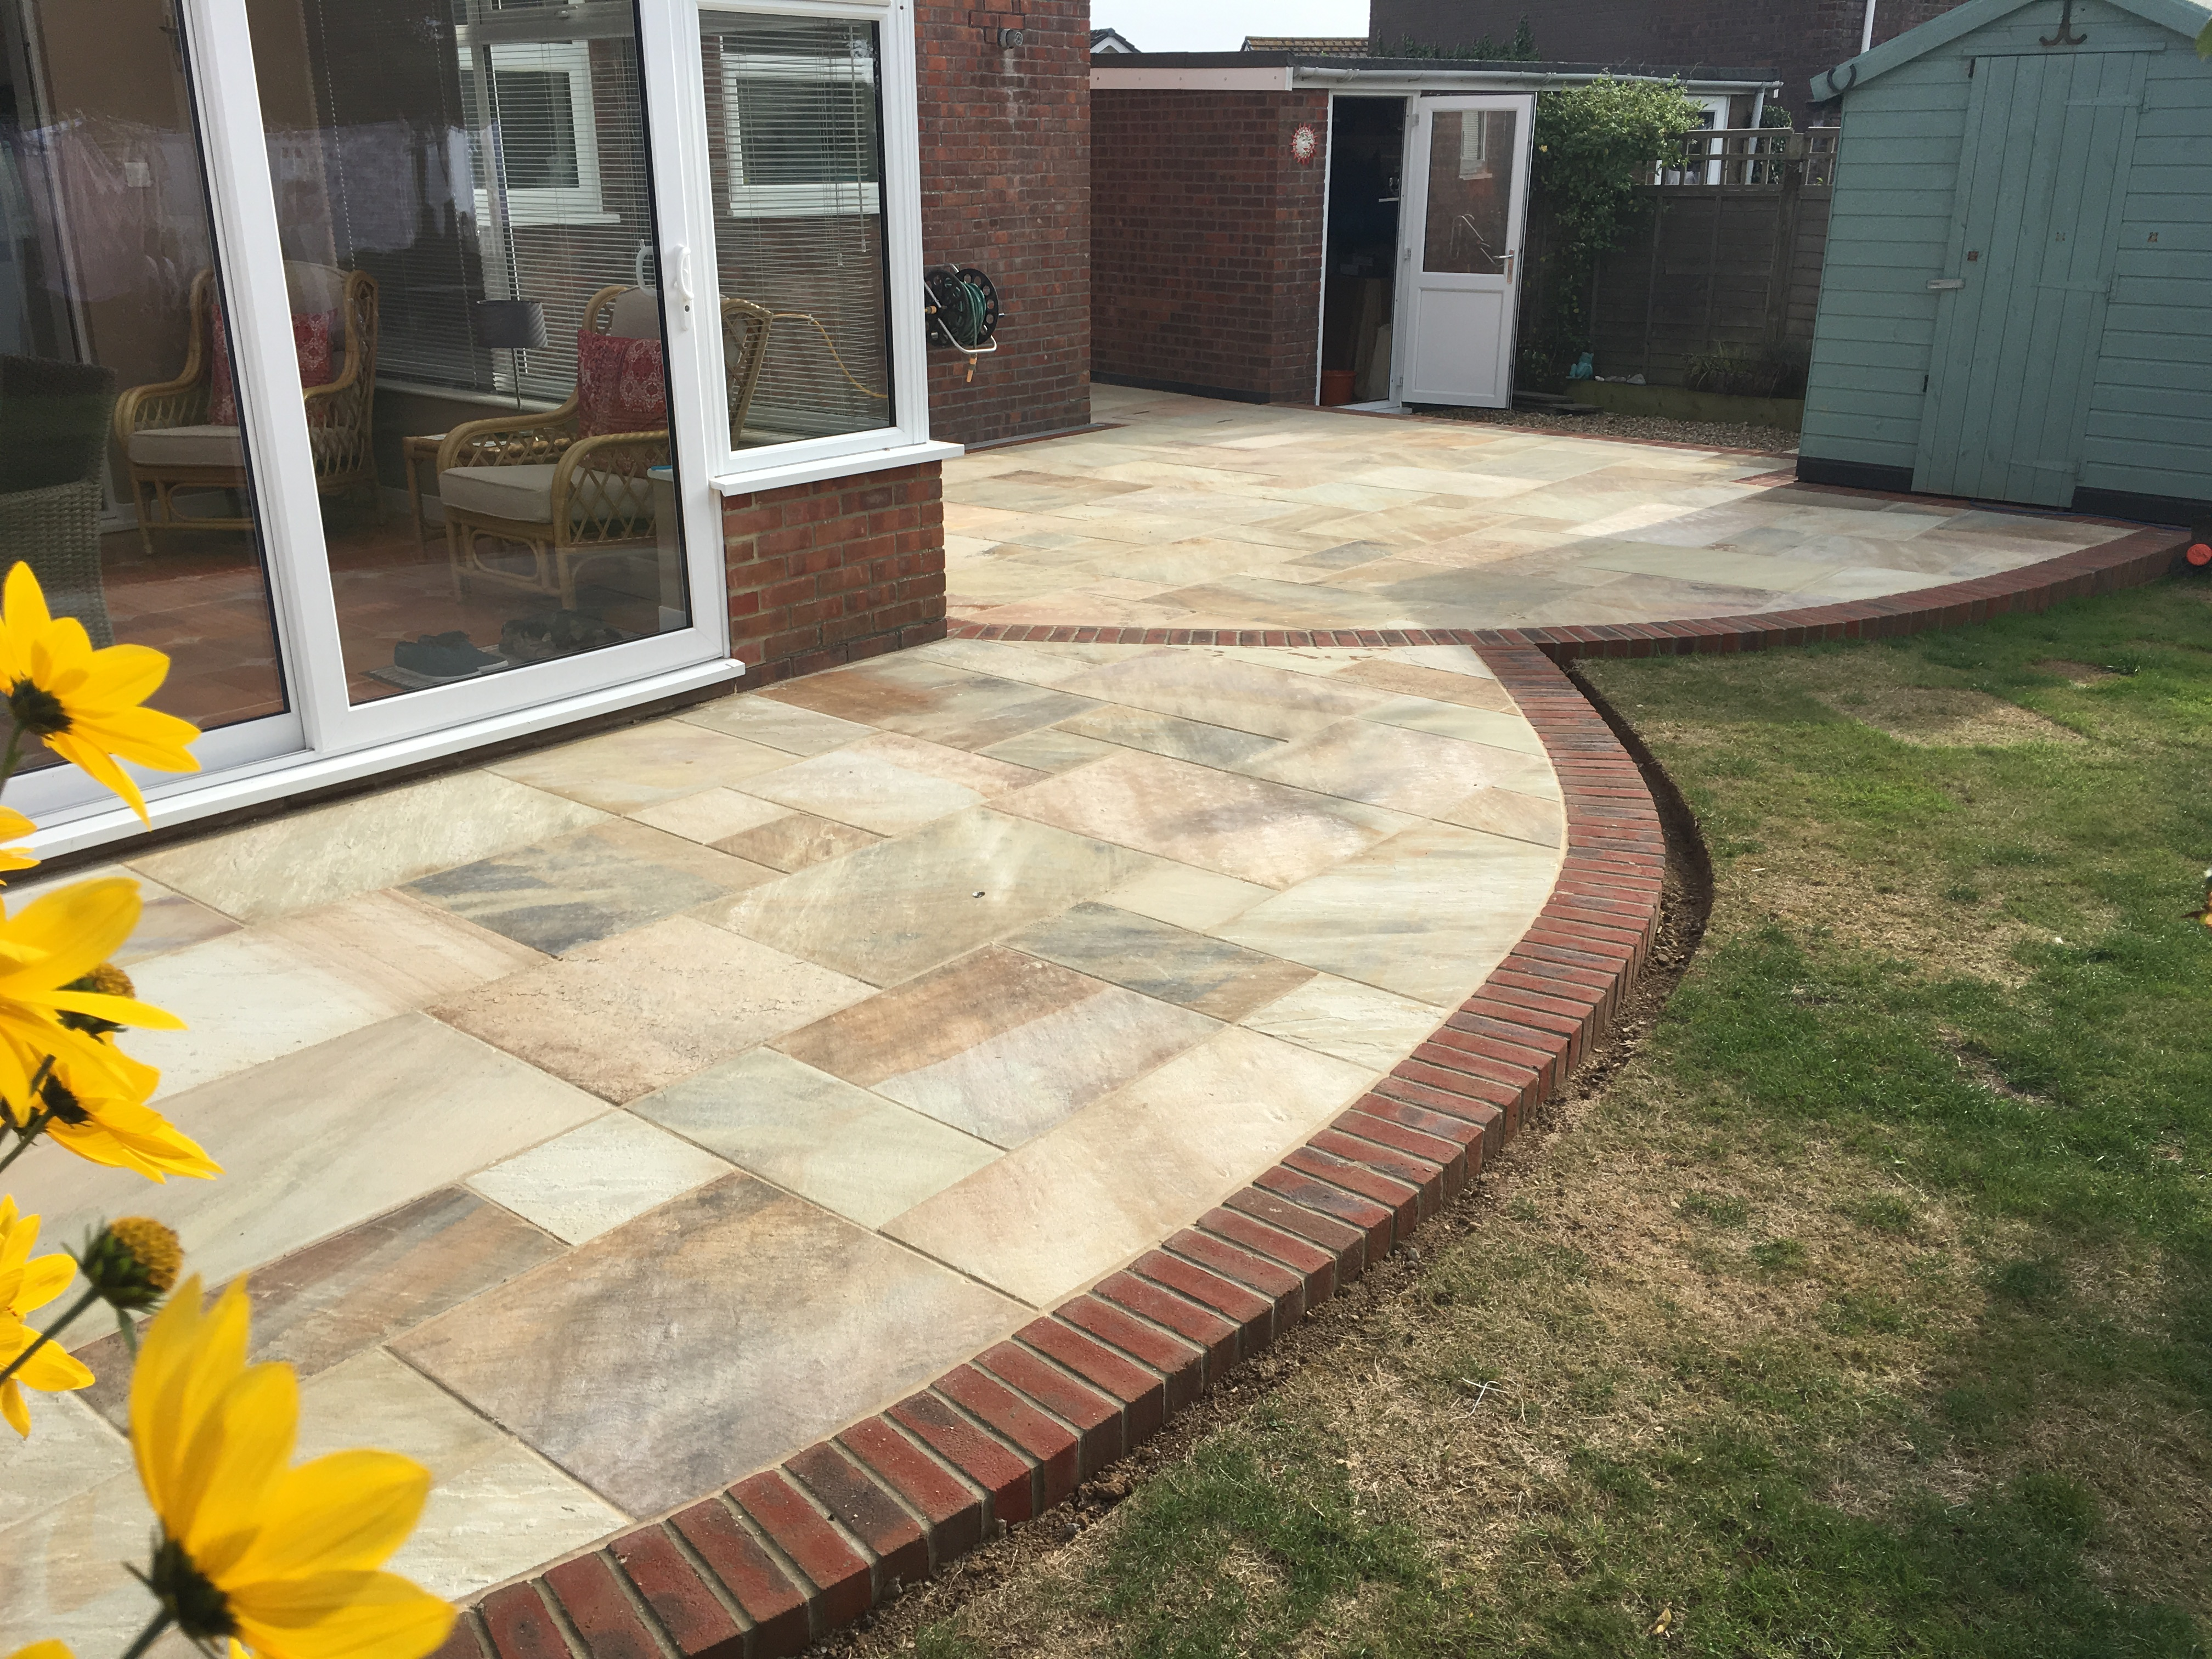 Garden Patio Ideas and Trends for 2021